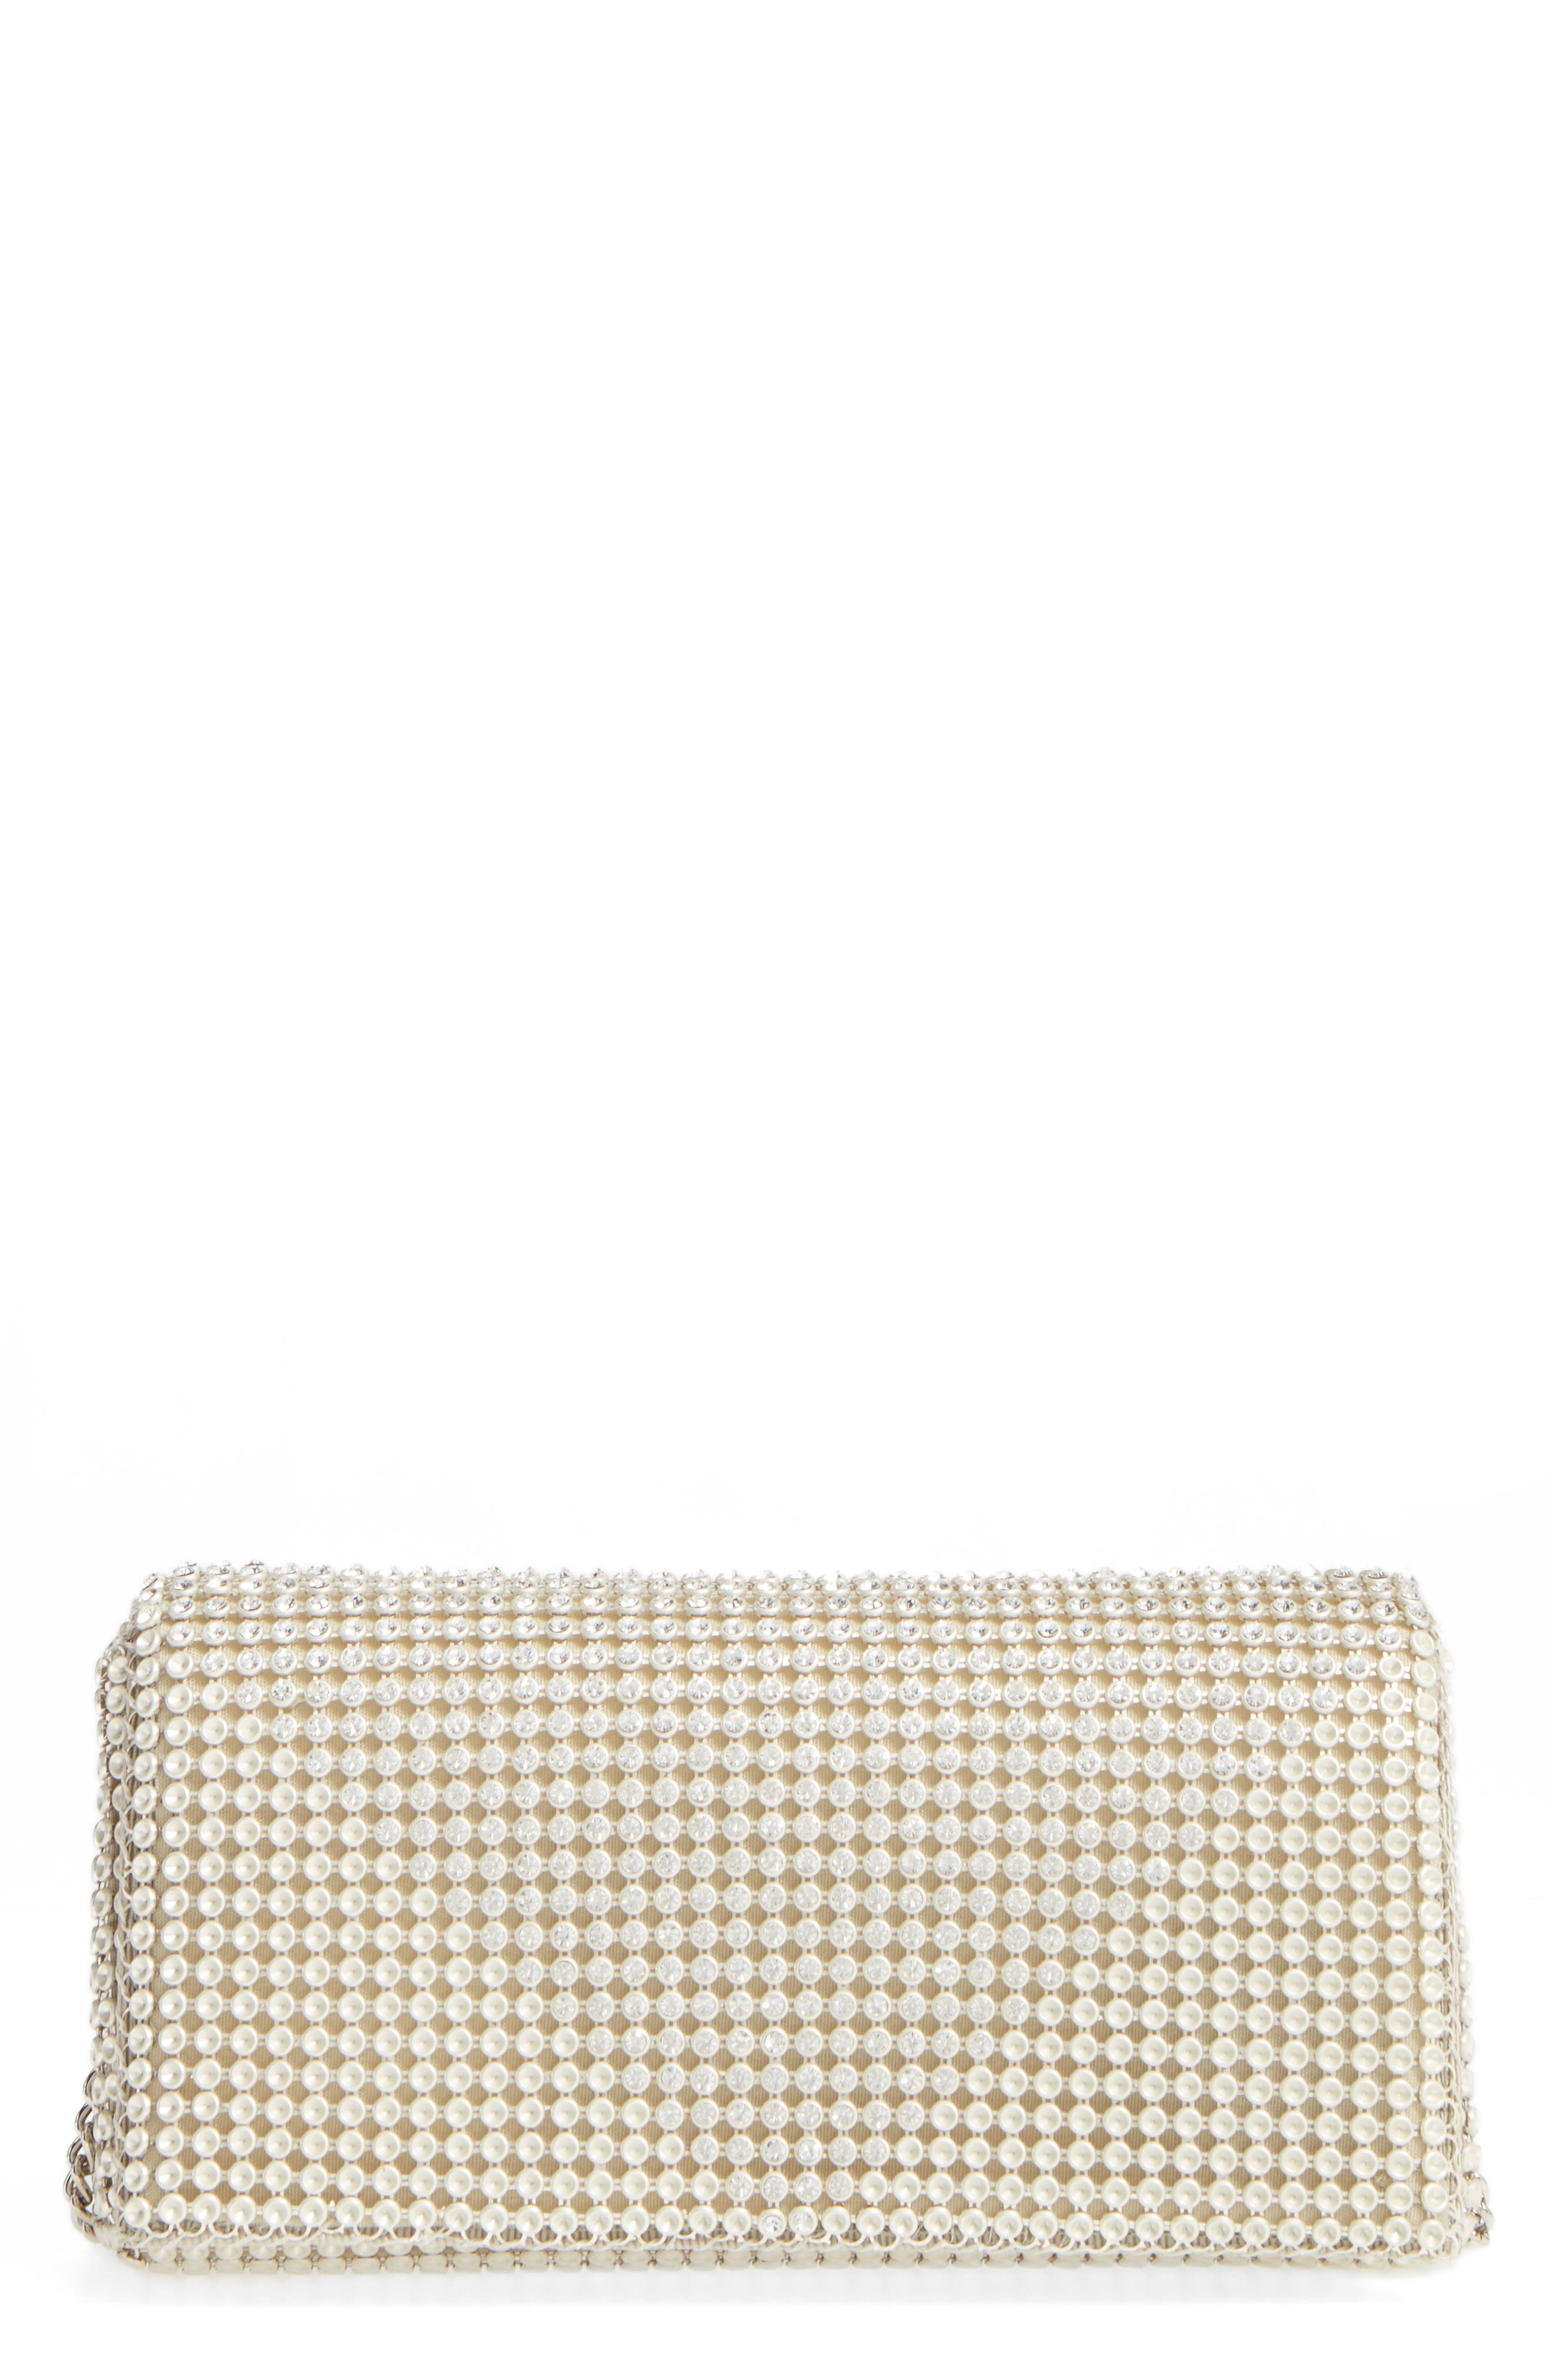 Alternate Image 1 Selected - Whiting & Davis Crystal Triangle Clutch